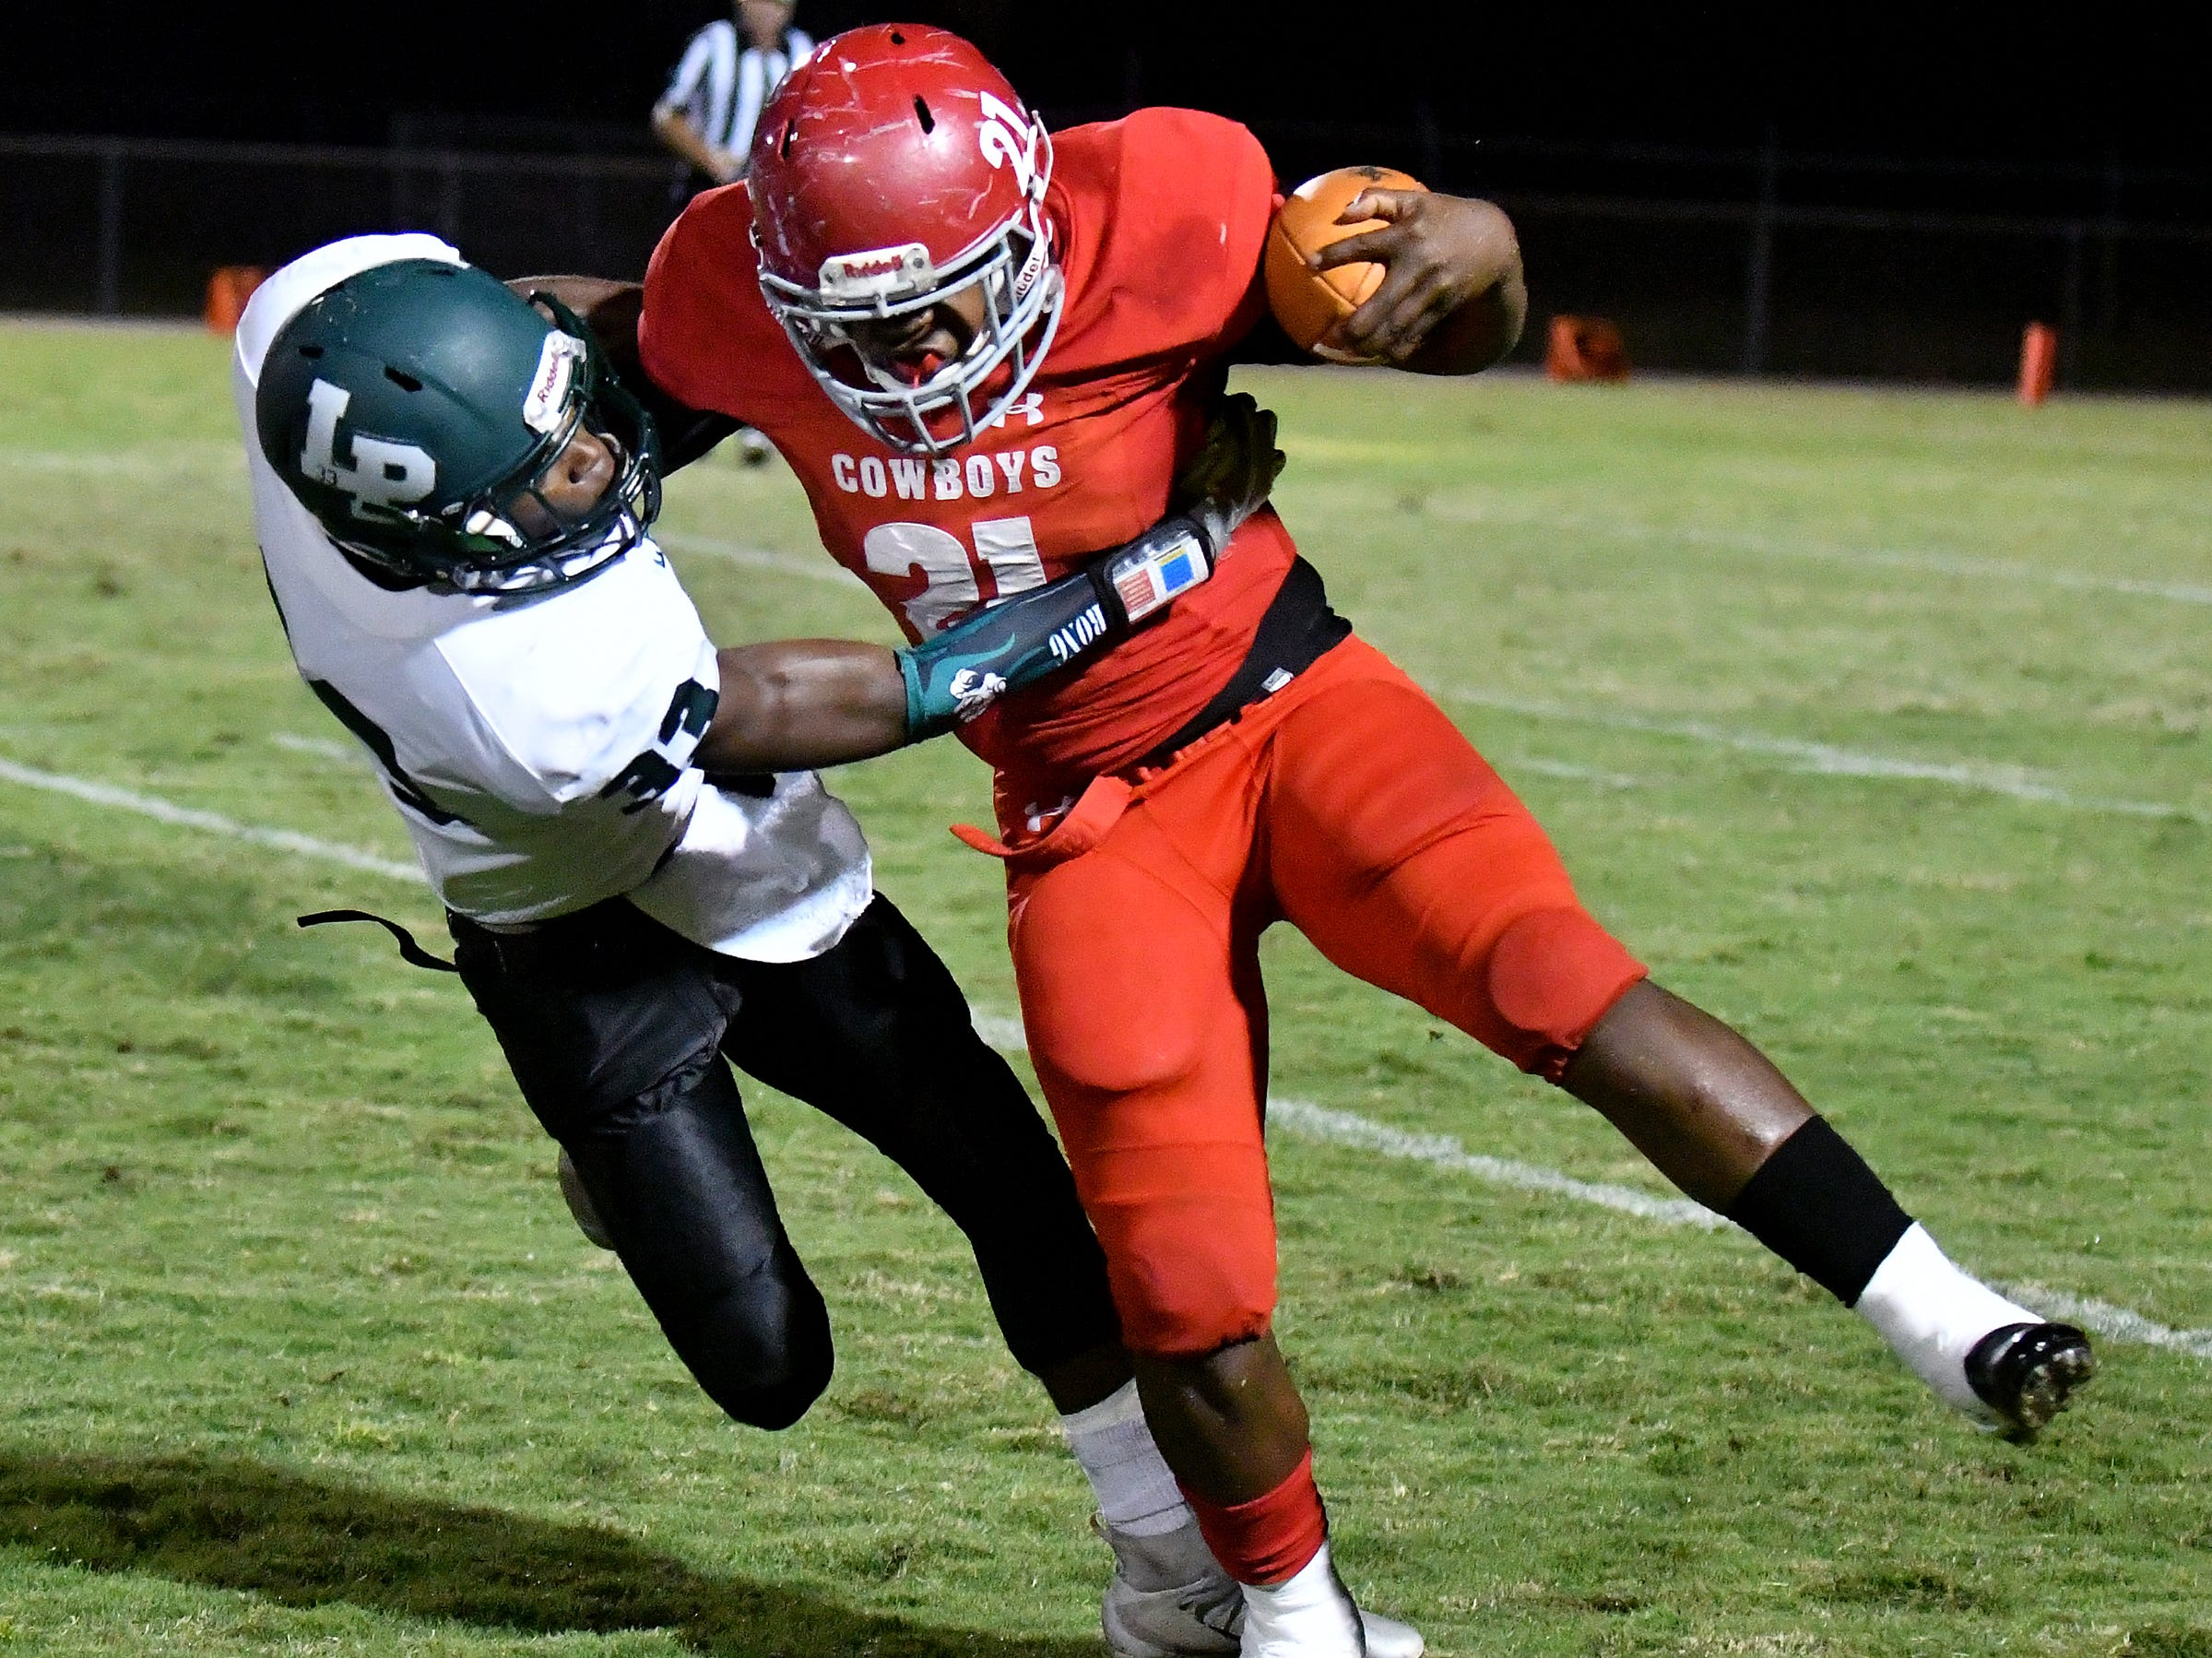 LaBelle High School's Maynard Blackmon runs the ball while fighting off a Lake Placid High School defender during their game on Friday, Nov. 9.